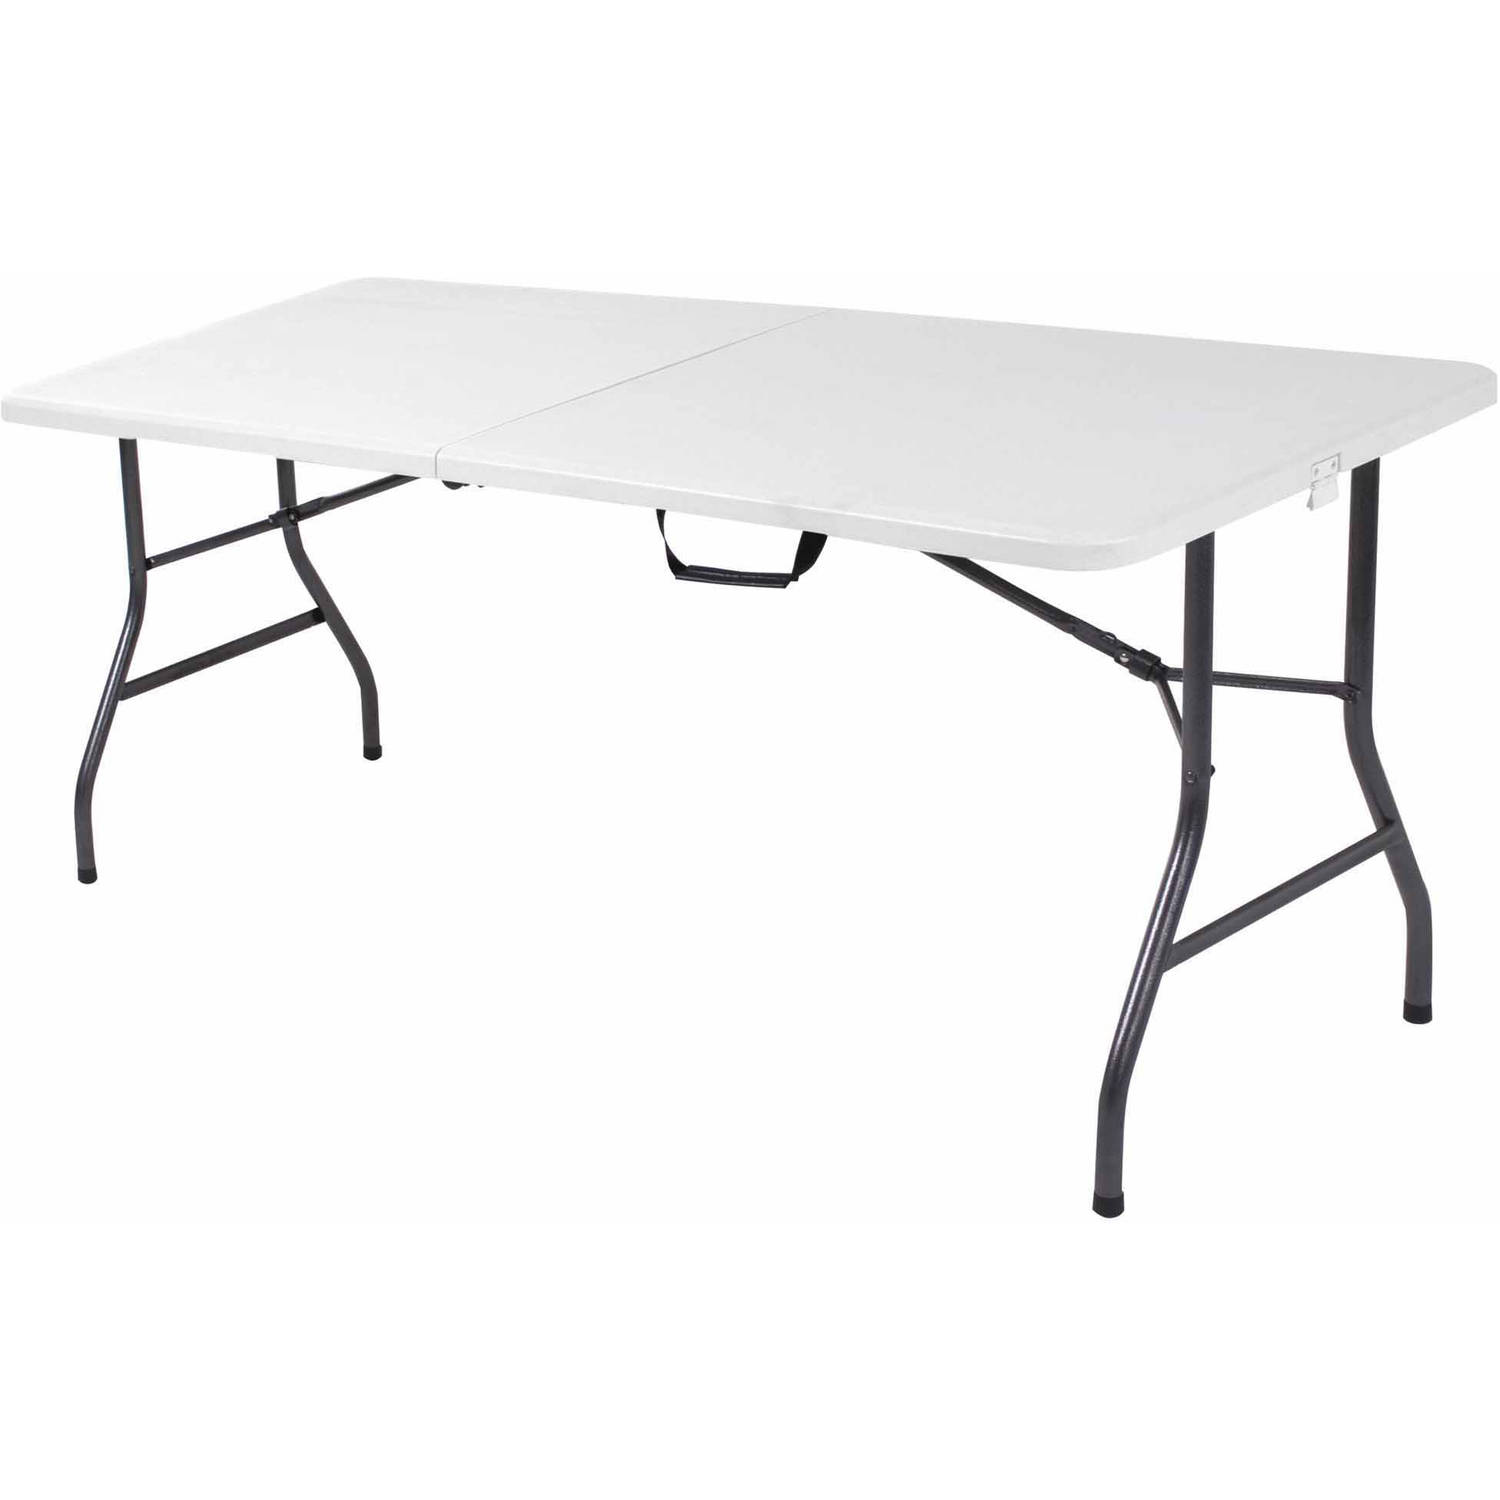 Folding tables chairs for Table retractable